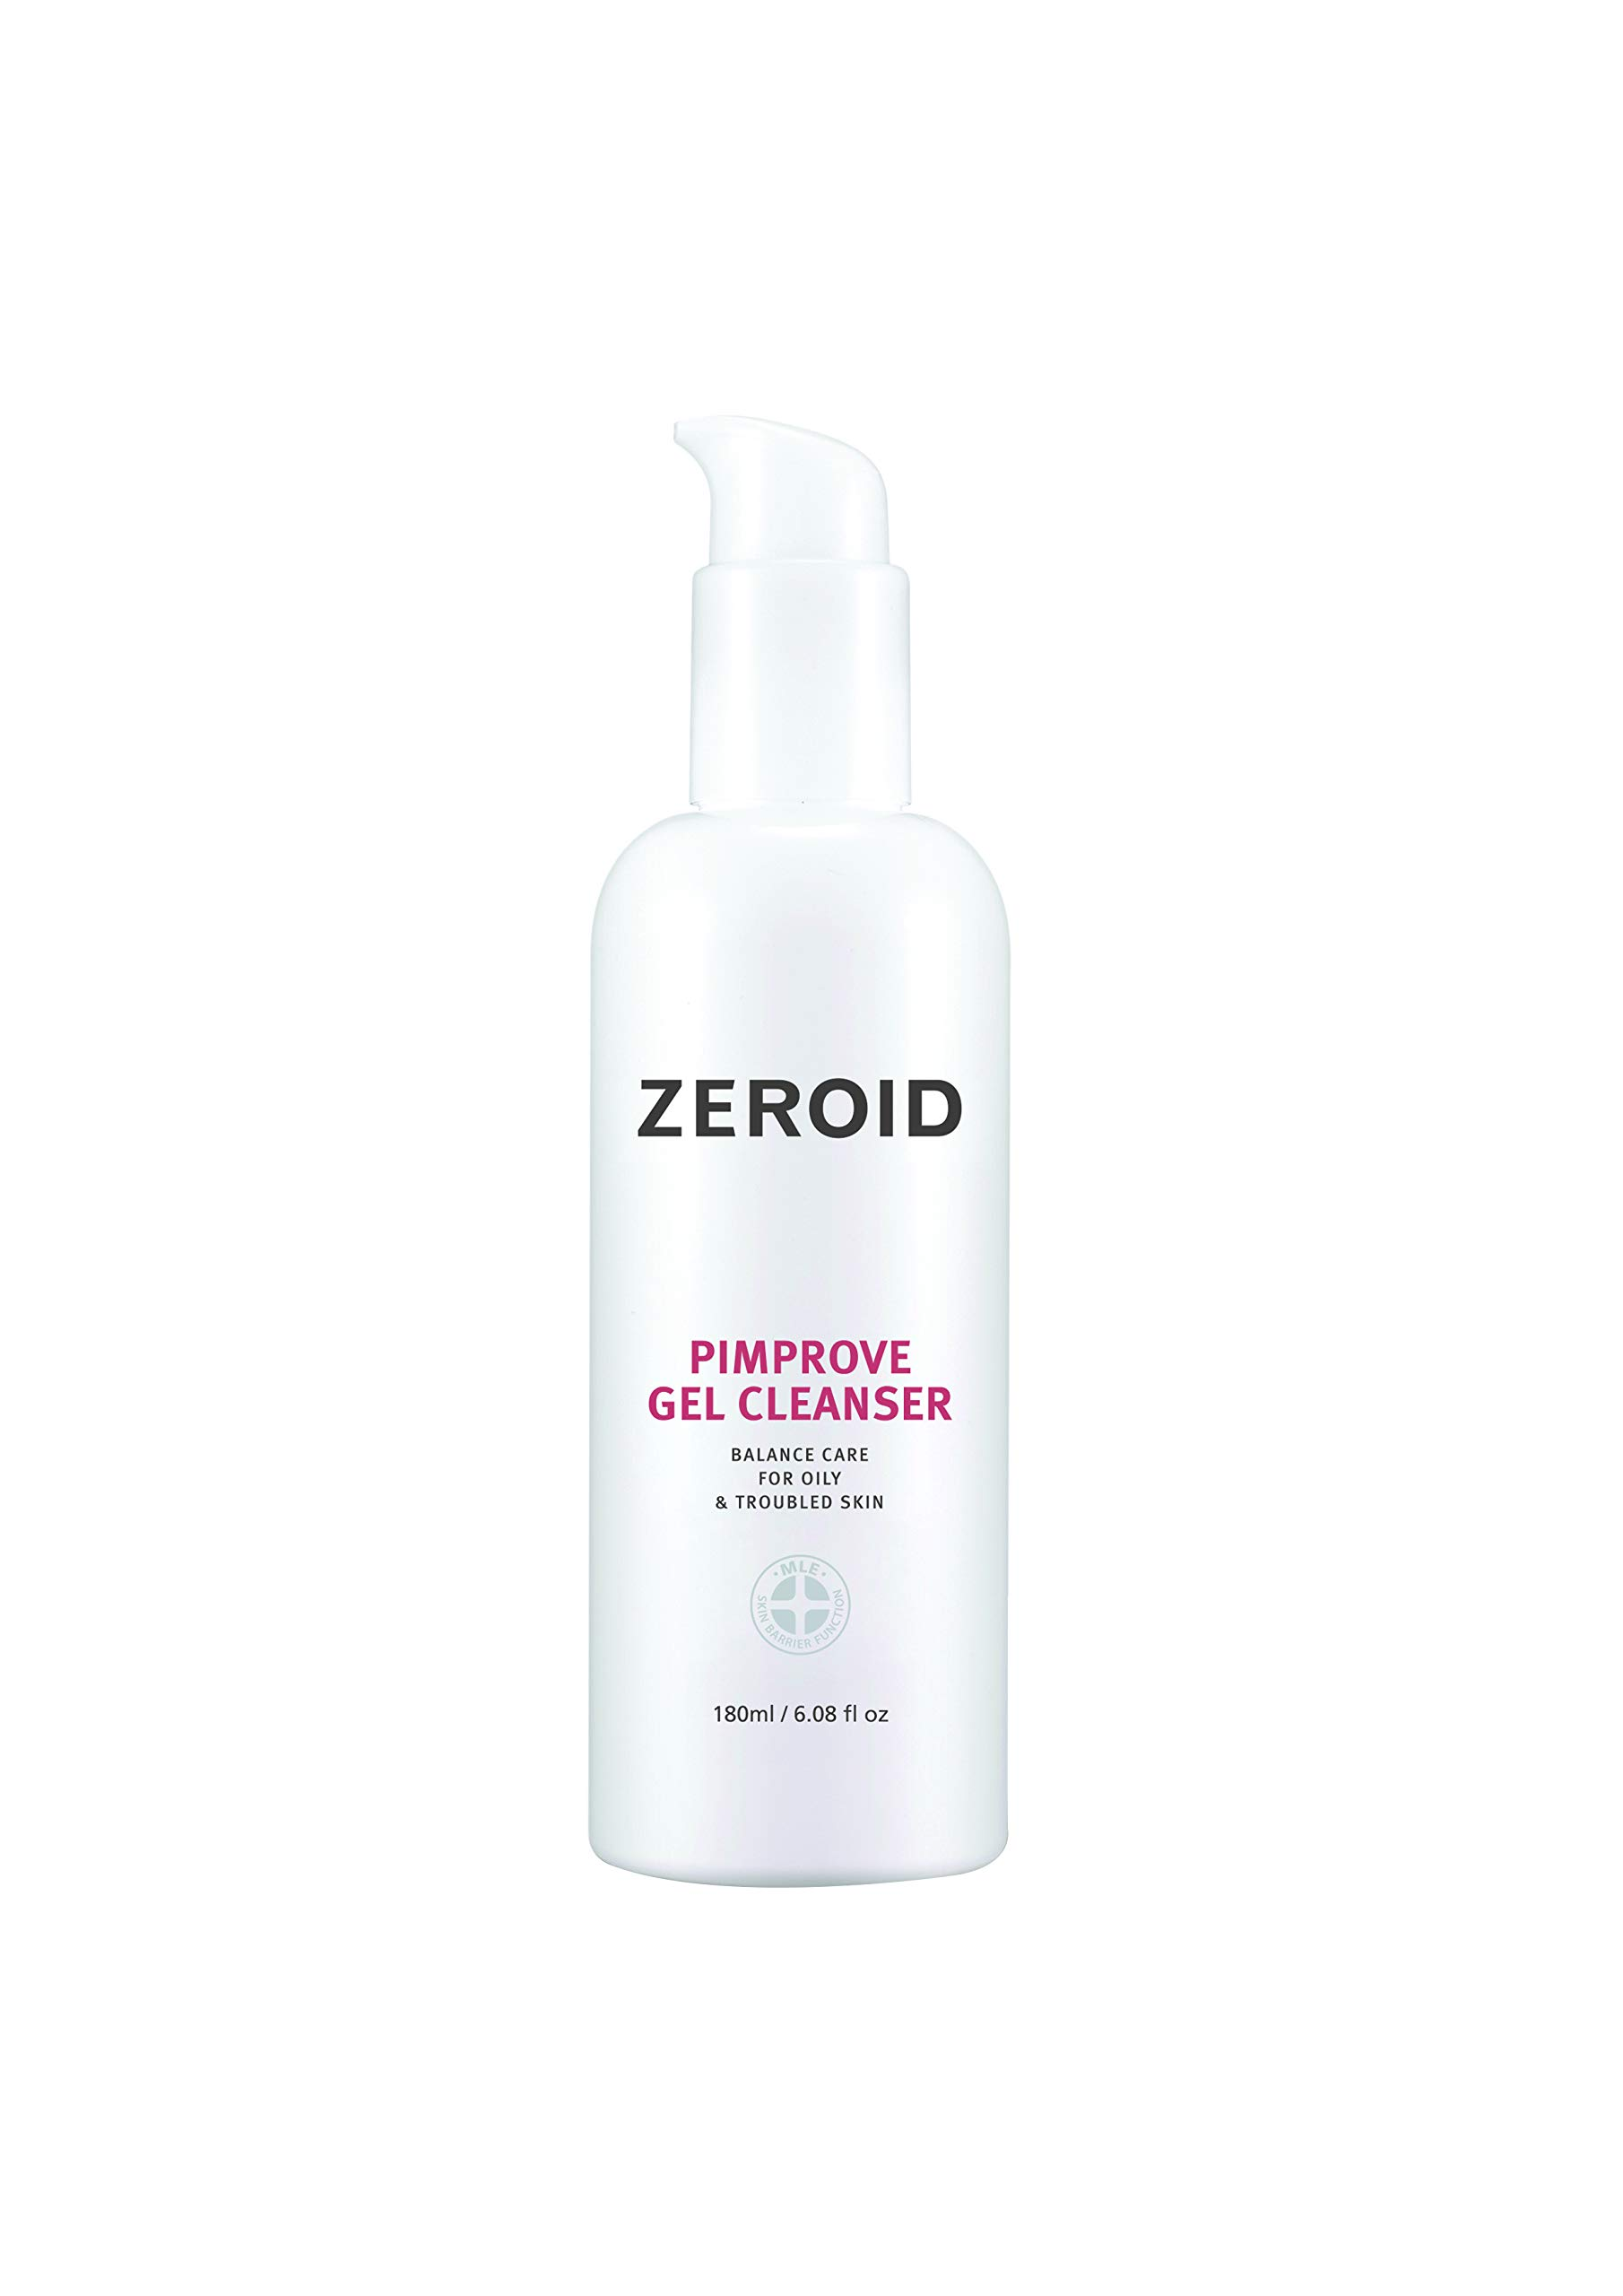 ZEROID Pimprove Gel Cleanser Balanced Care for Oily & Troubled Skin (180 mL)